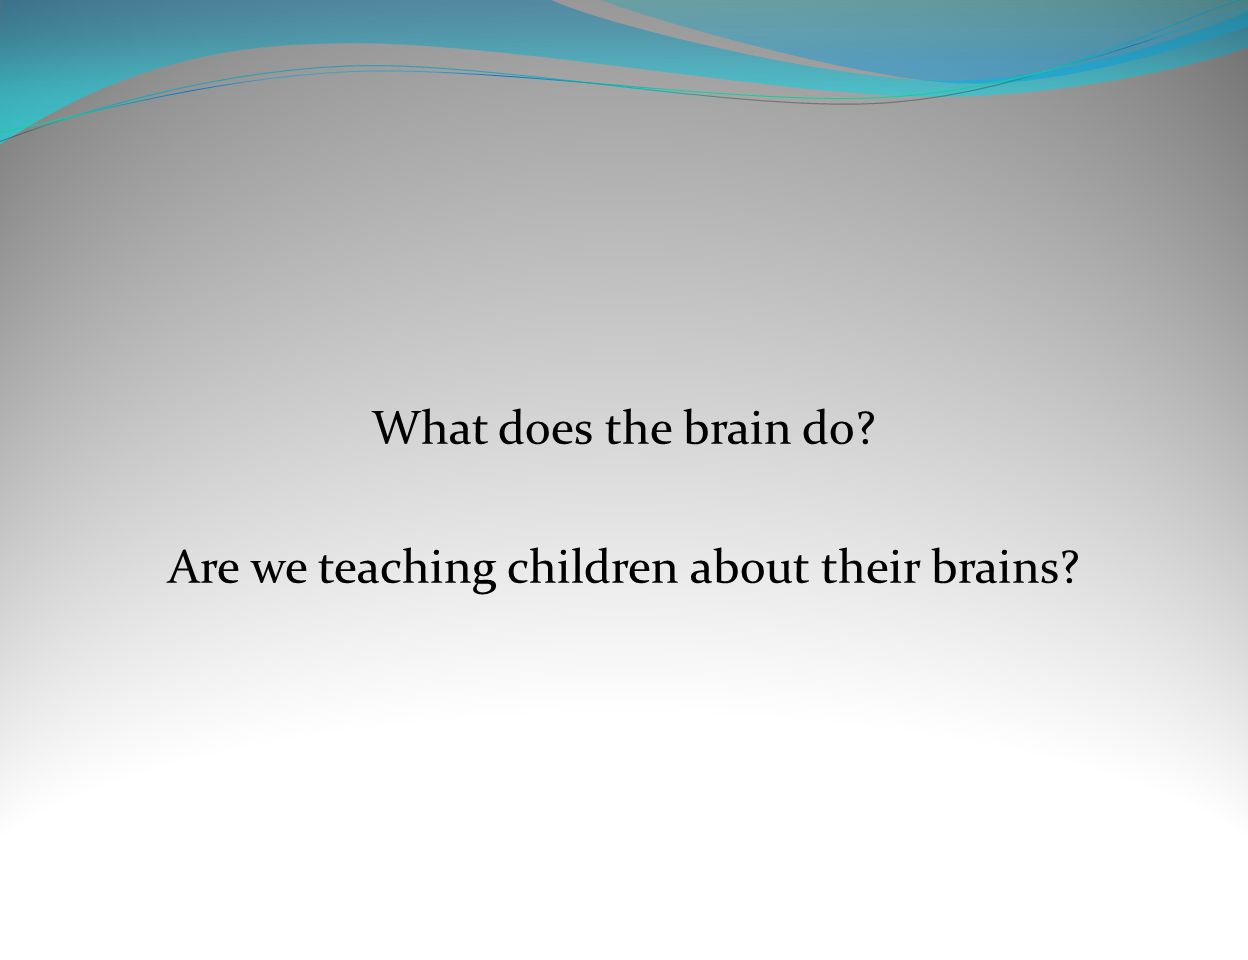 Are we teaching children about their brains